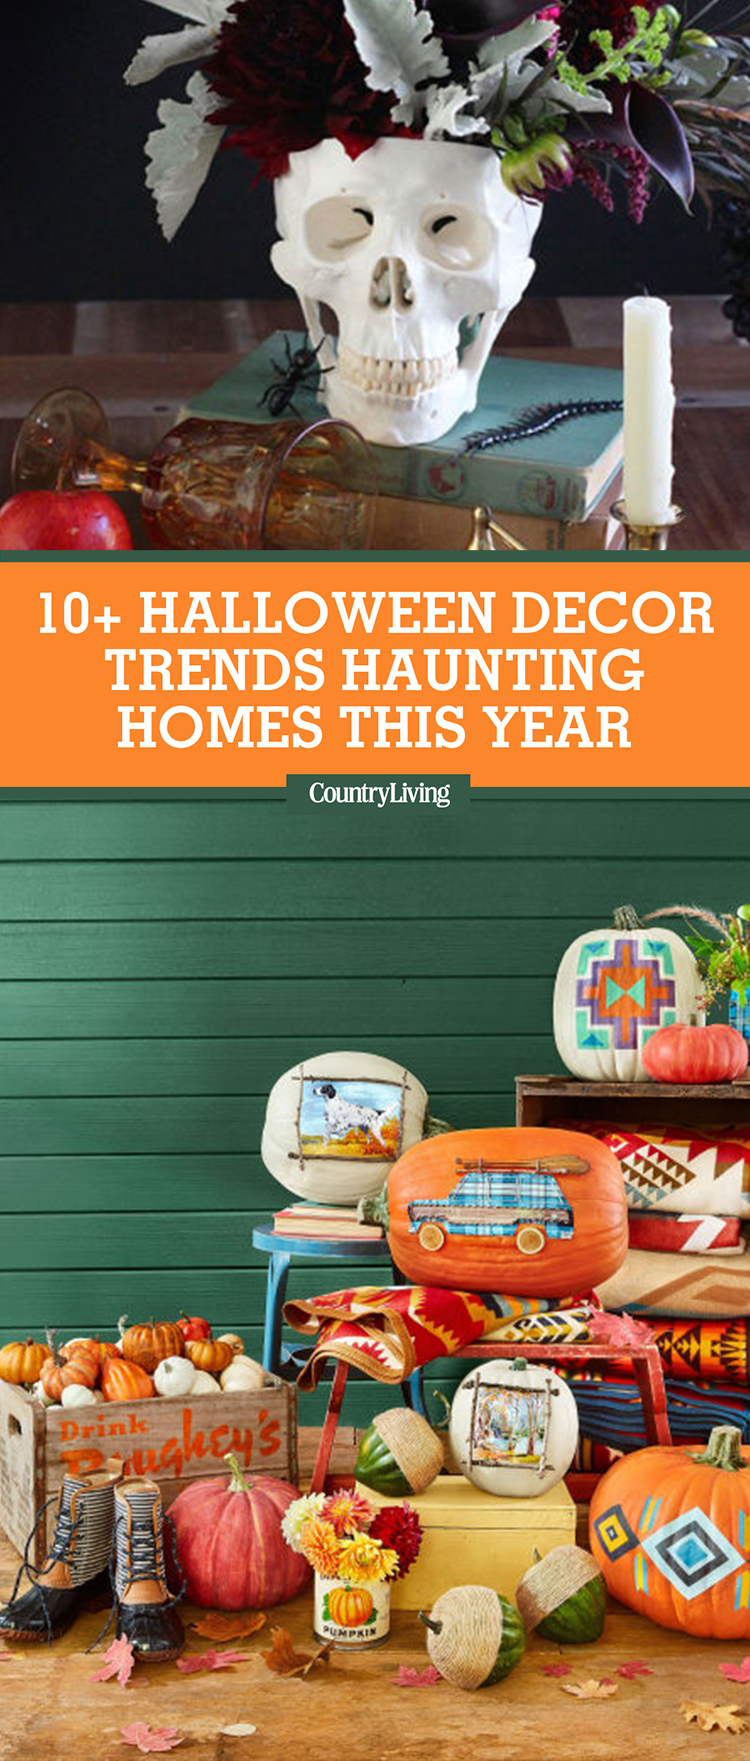 10 Halloween Decor Trends Taking Over Homes This 2017 The One Halloween Decoration Home Depot: halloween decorations home depot